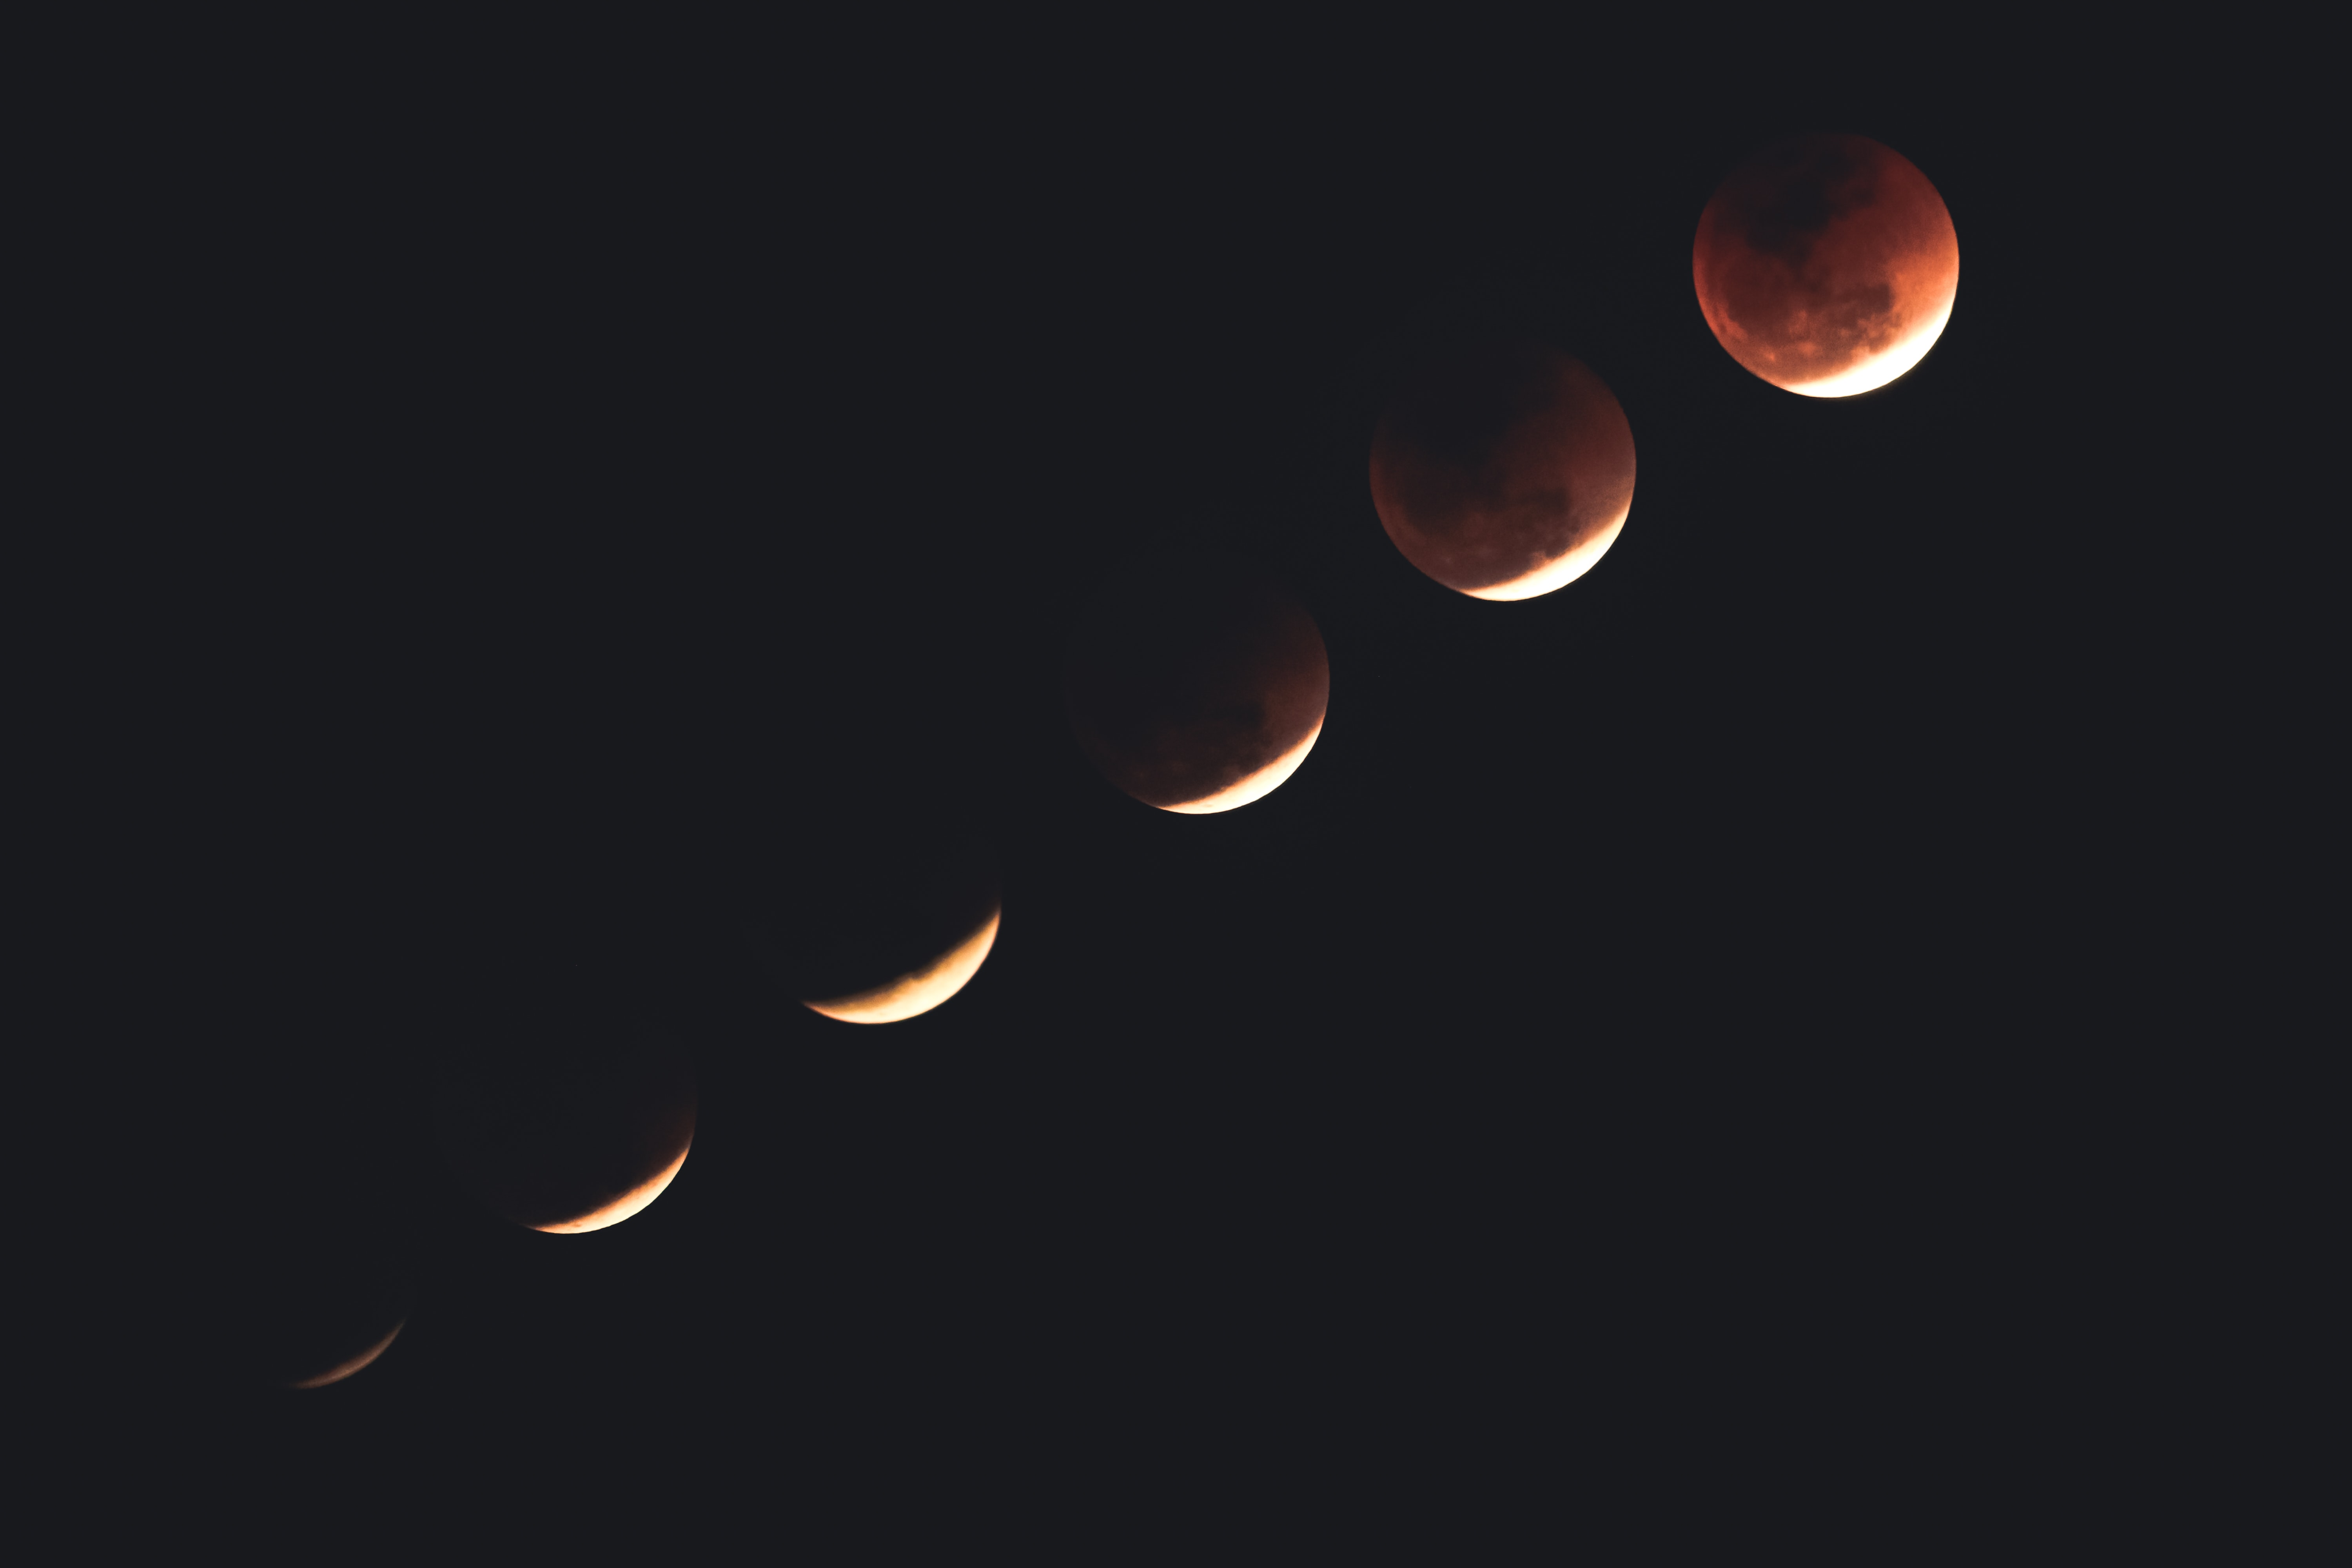 process of total eclipse